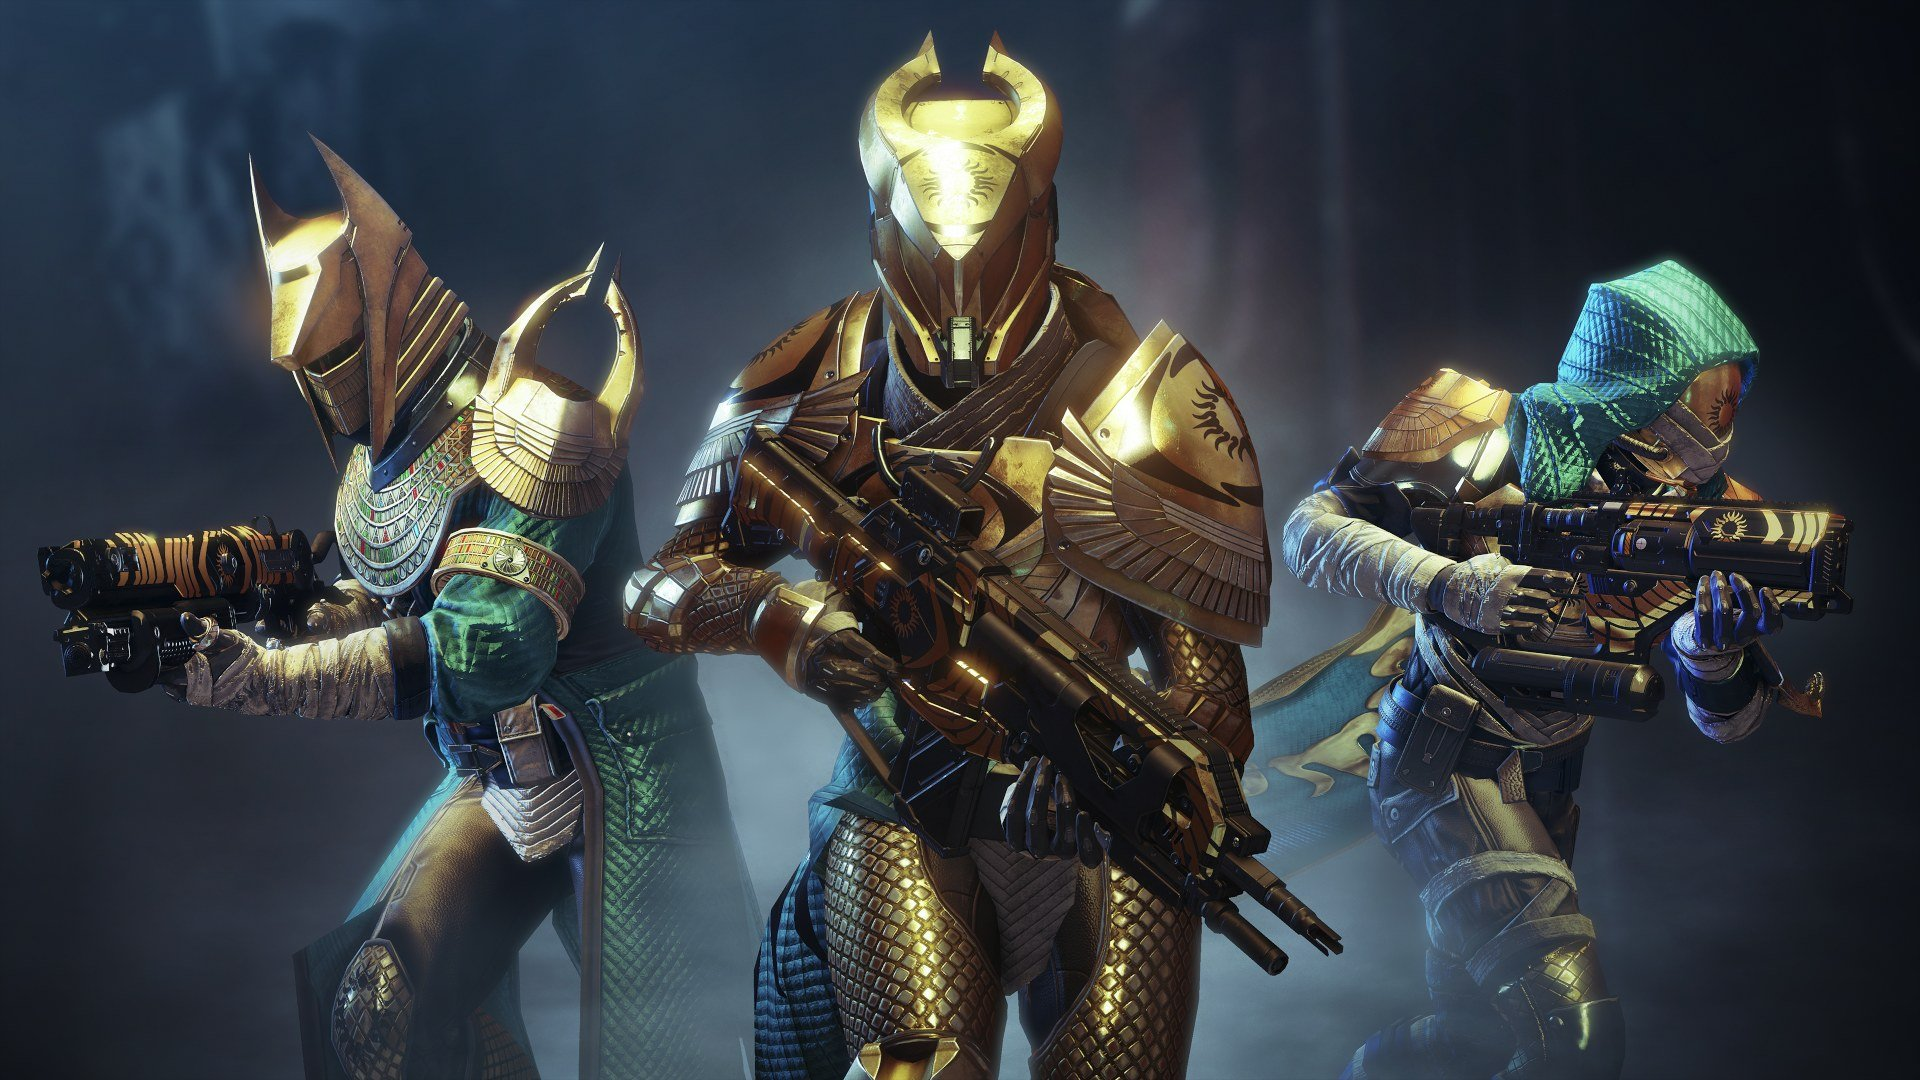 Here's a breakdown of the schedule for Destiny 2's Season of the Worthy screenshot